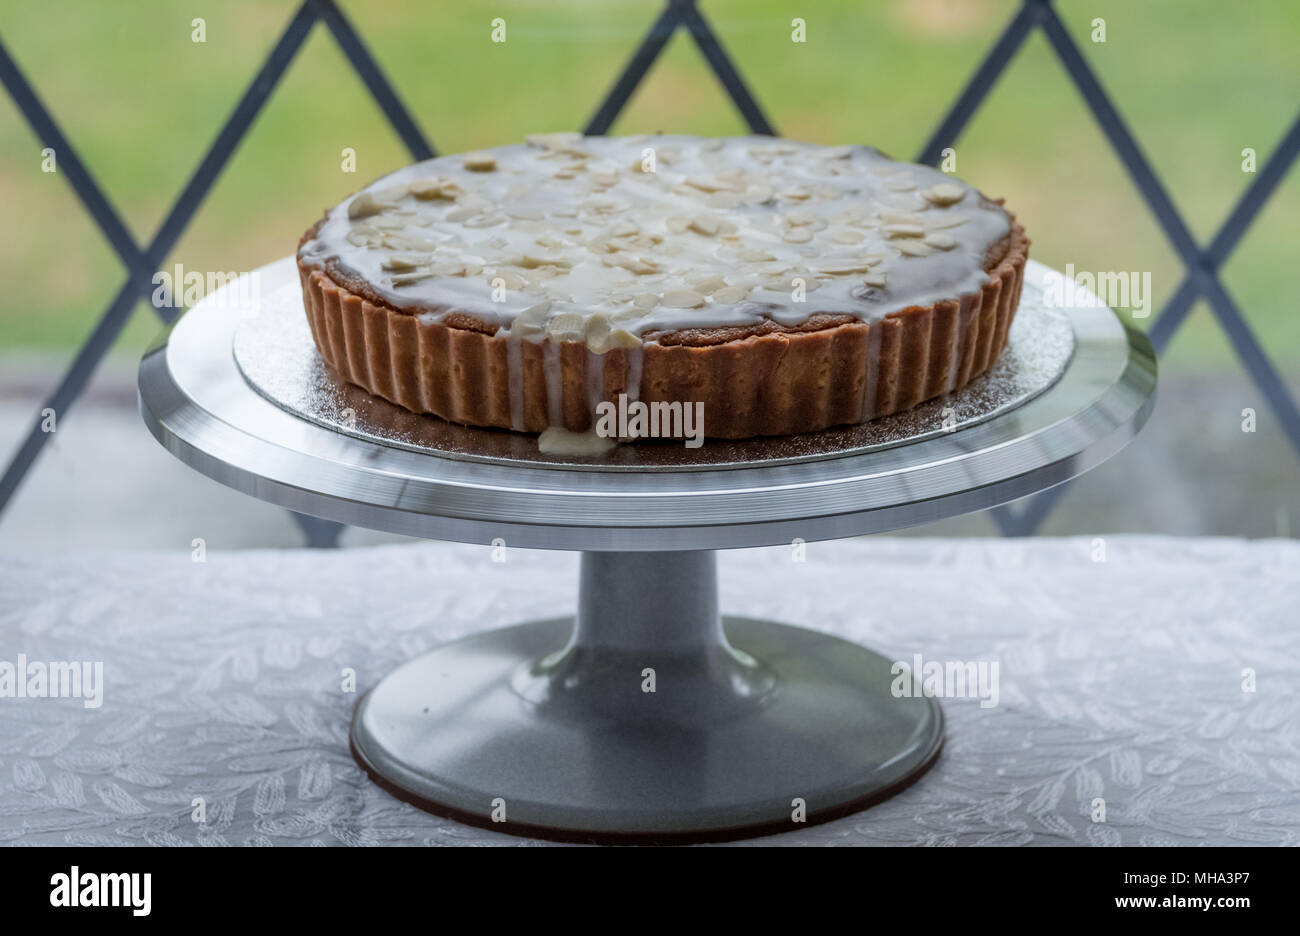 Home baked Bakewell Tart cake on metal cake stand in front of window, with garden behind. - Stock Image